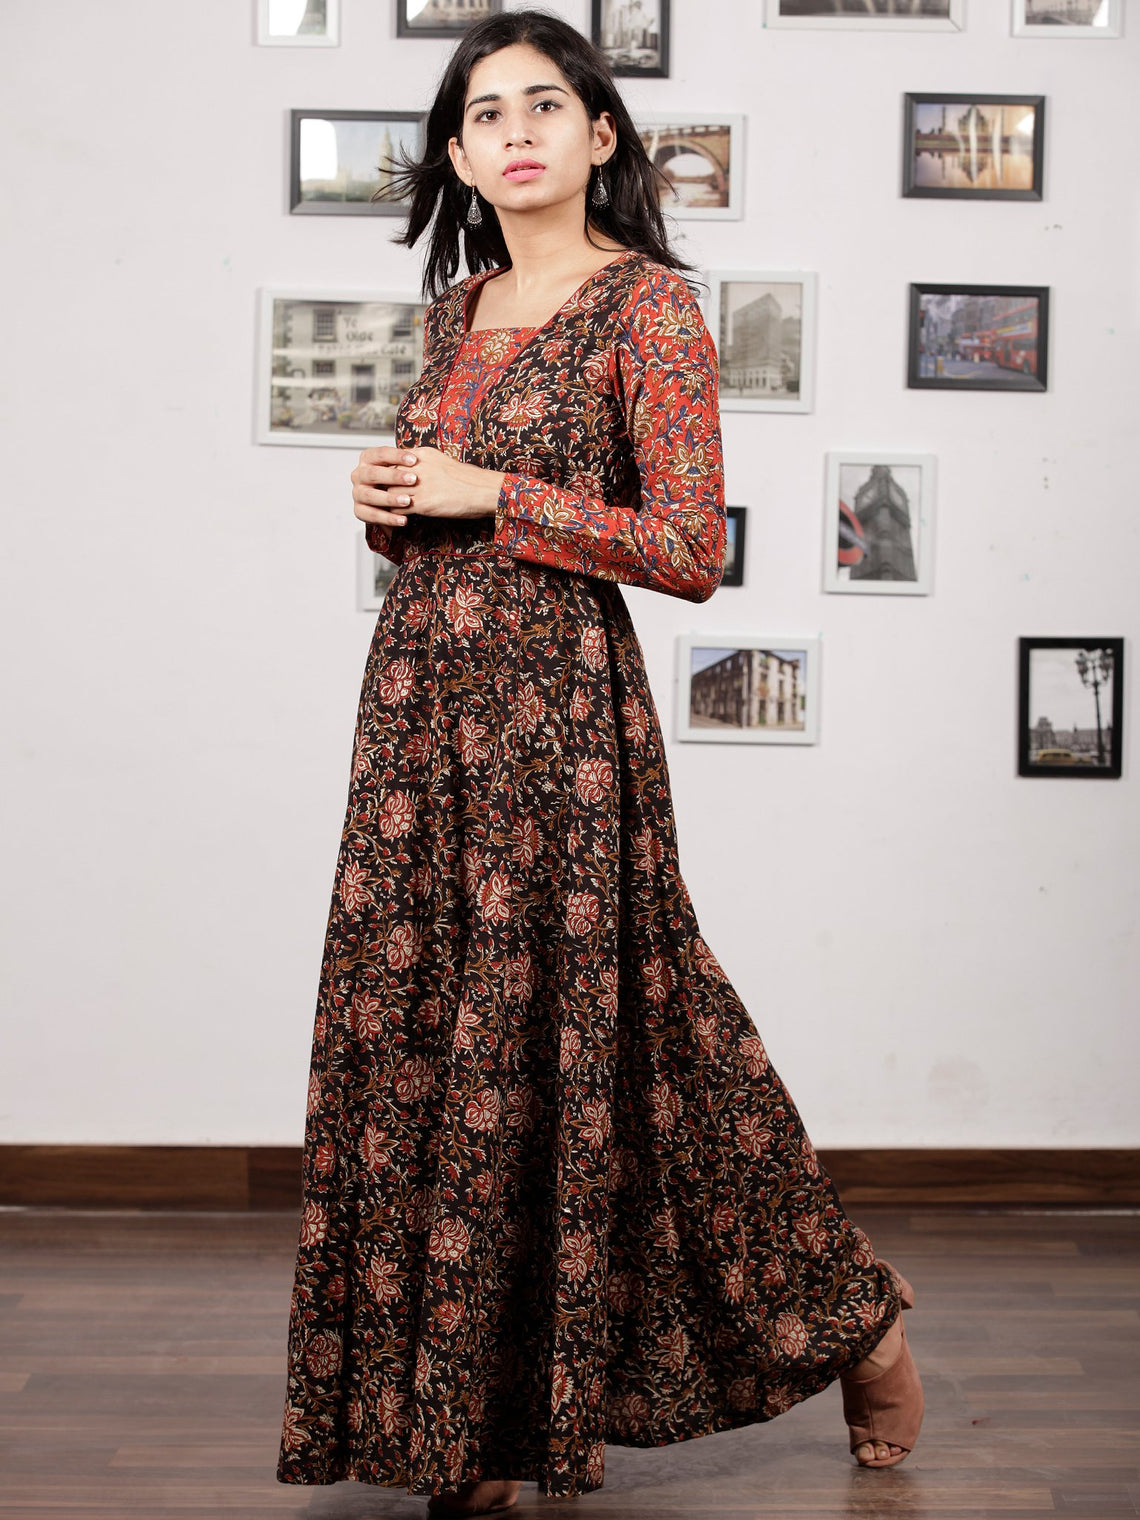 Black Maroon Brown Red Hand Block Printed Long Cotton Dress With Kali Style - D190F1223